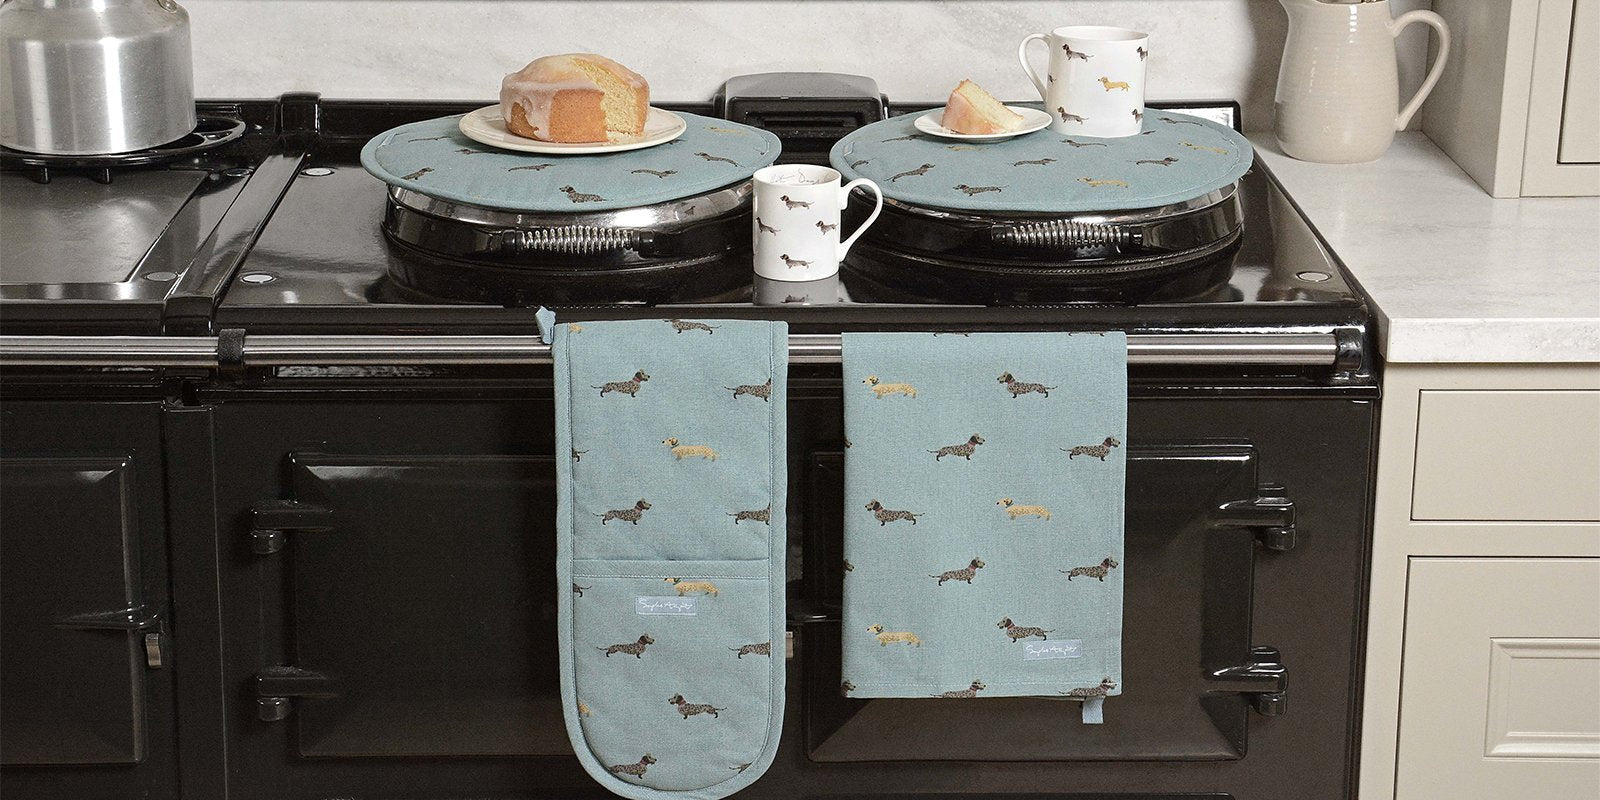 Gift and homeware ideas for Dachshund lovers by Sophie Allport